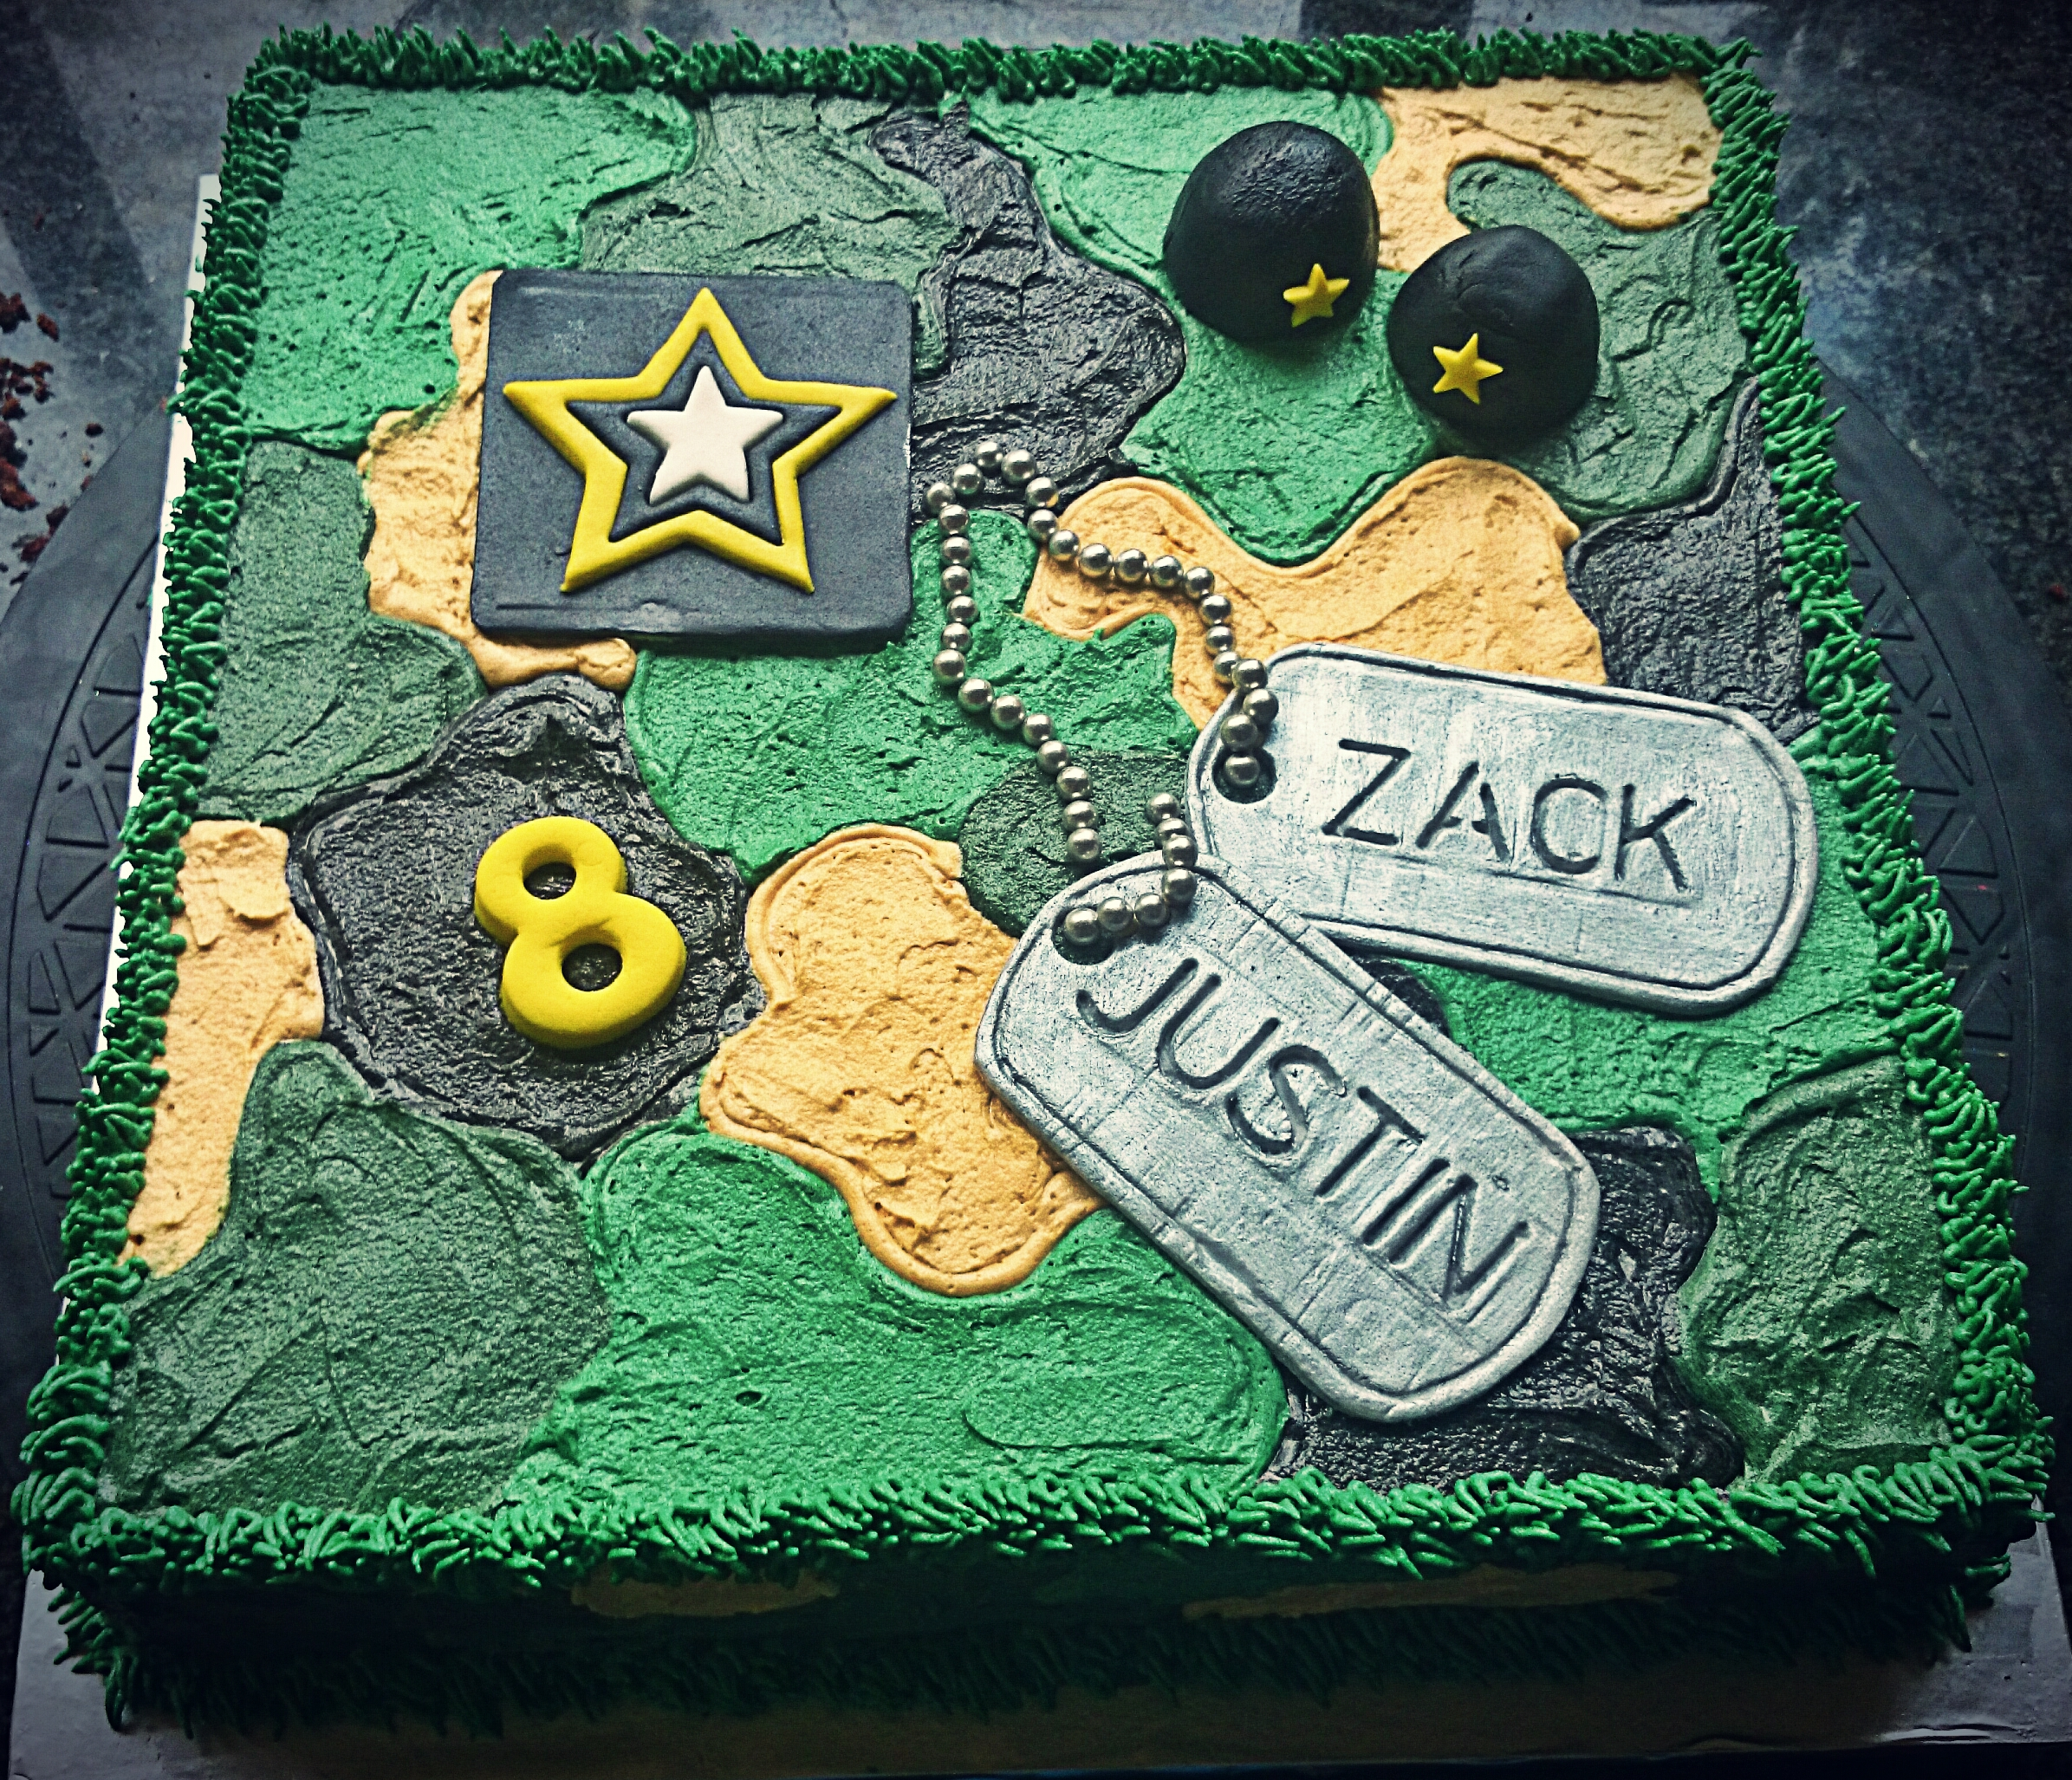 Themed Birthday Cakes Johannesburg The Best Looks And Taste